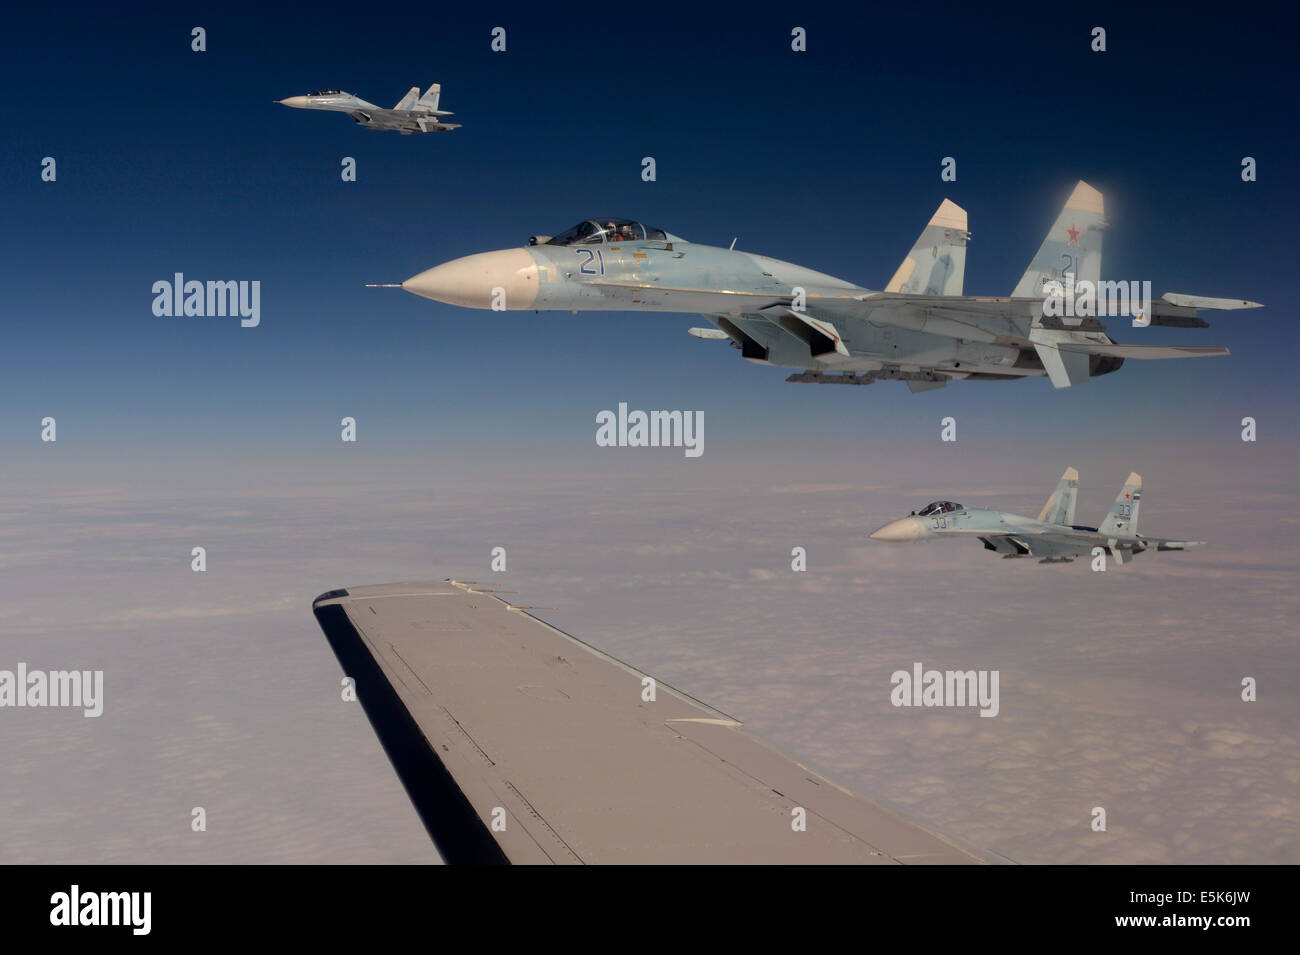 Russian Federation Air Force Su-27 Sukhoi fighter aircraft intercept a simulated hijacked aircraft entering Russian - Stock Image